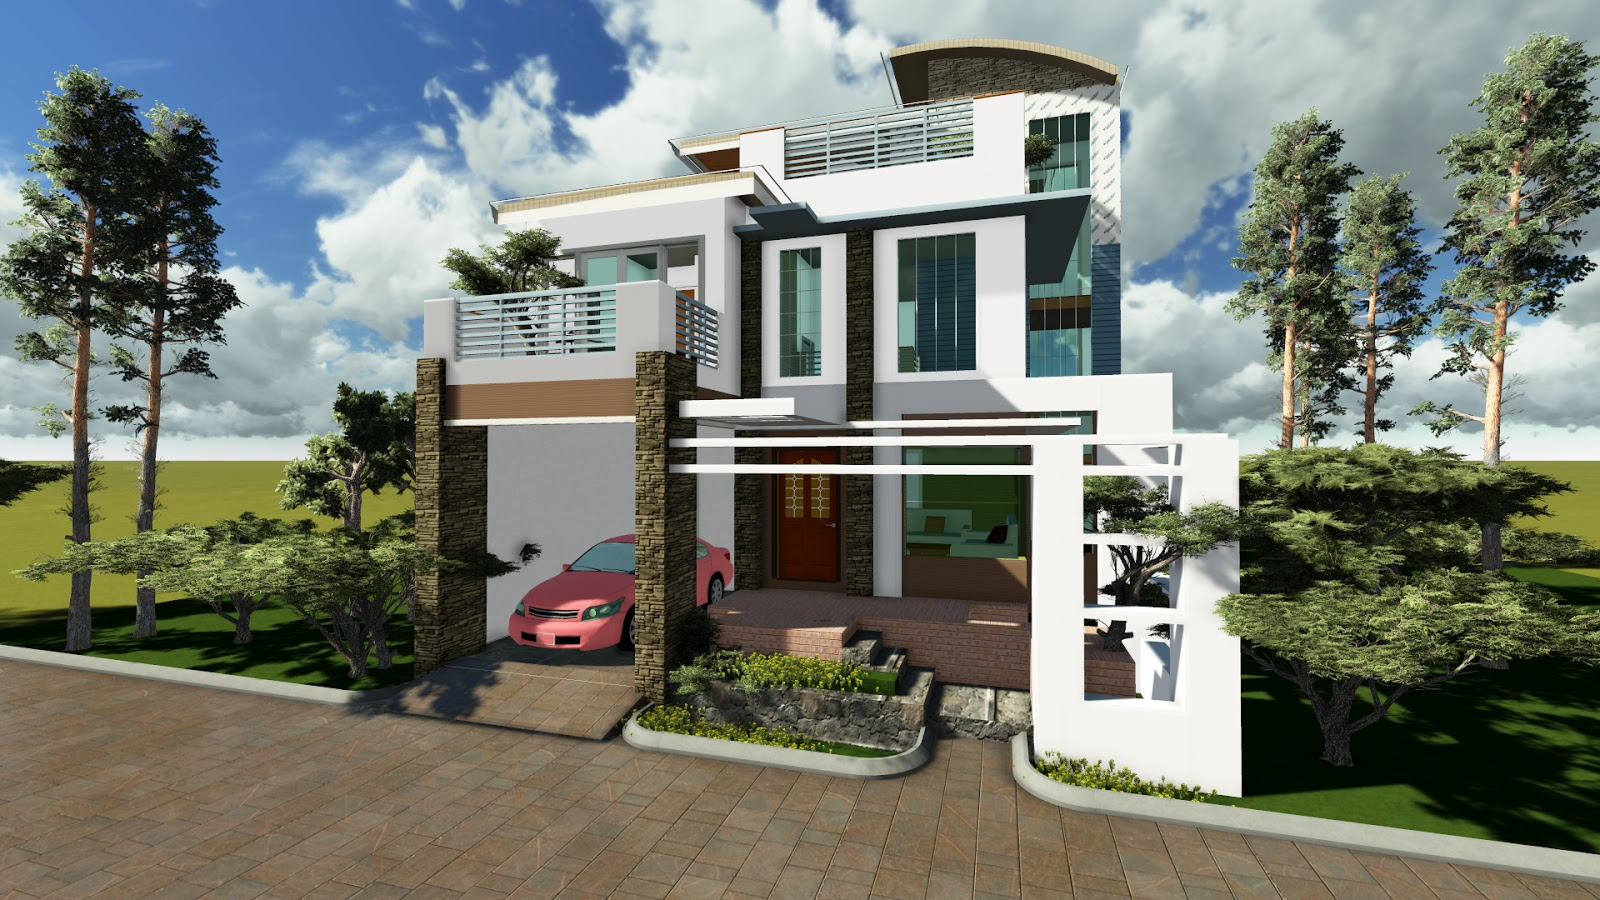 House designs in the philippines in iloilo by erecre group for Philippines houses pictures